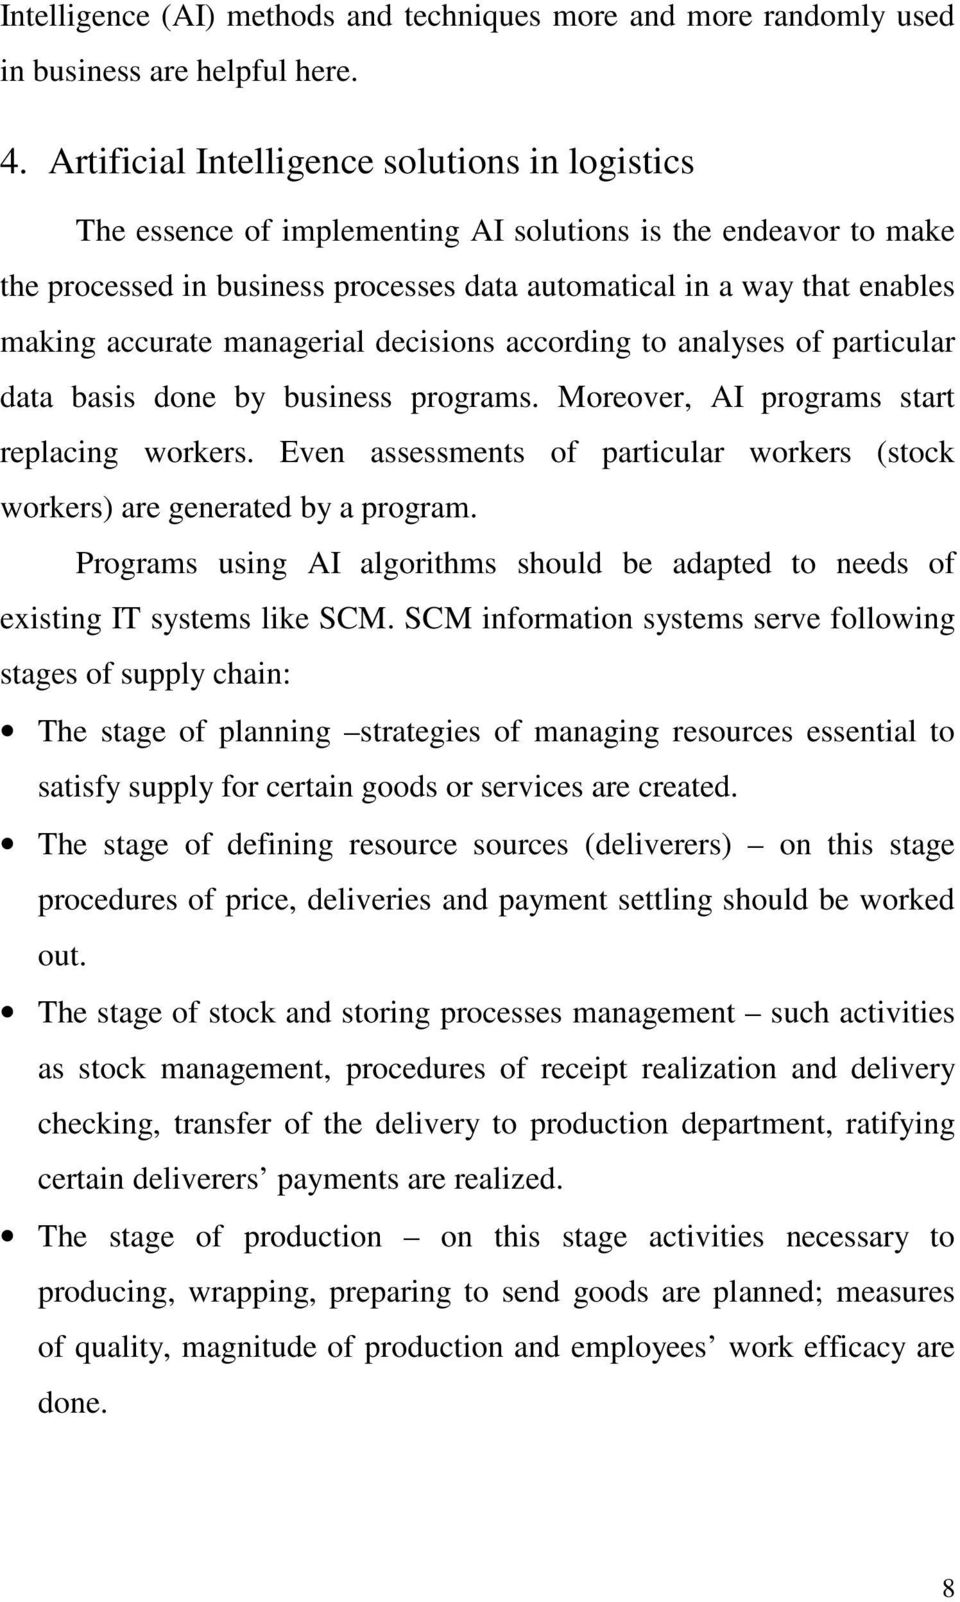 accurate managerial decisions according to analyses of particular data basis done by business programs. Moreover, AI programs start replacing workers.